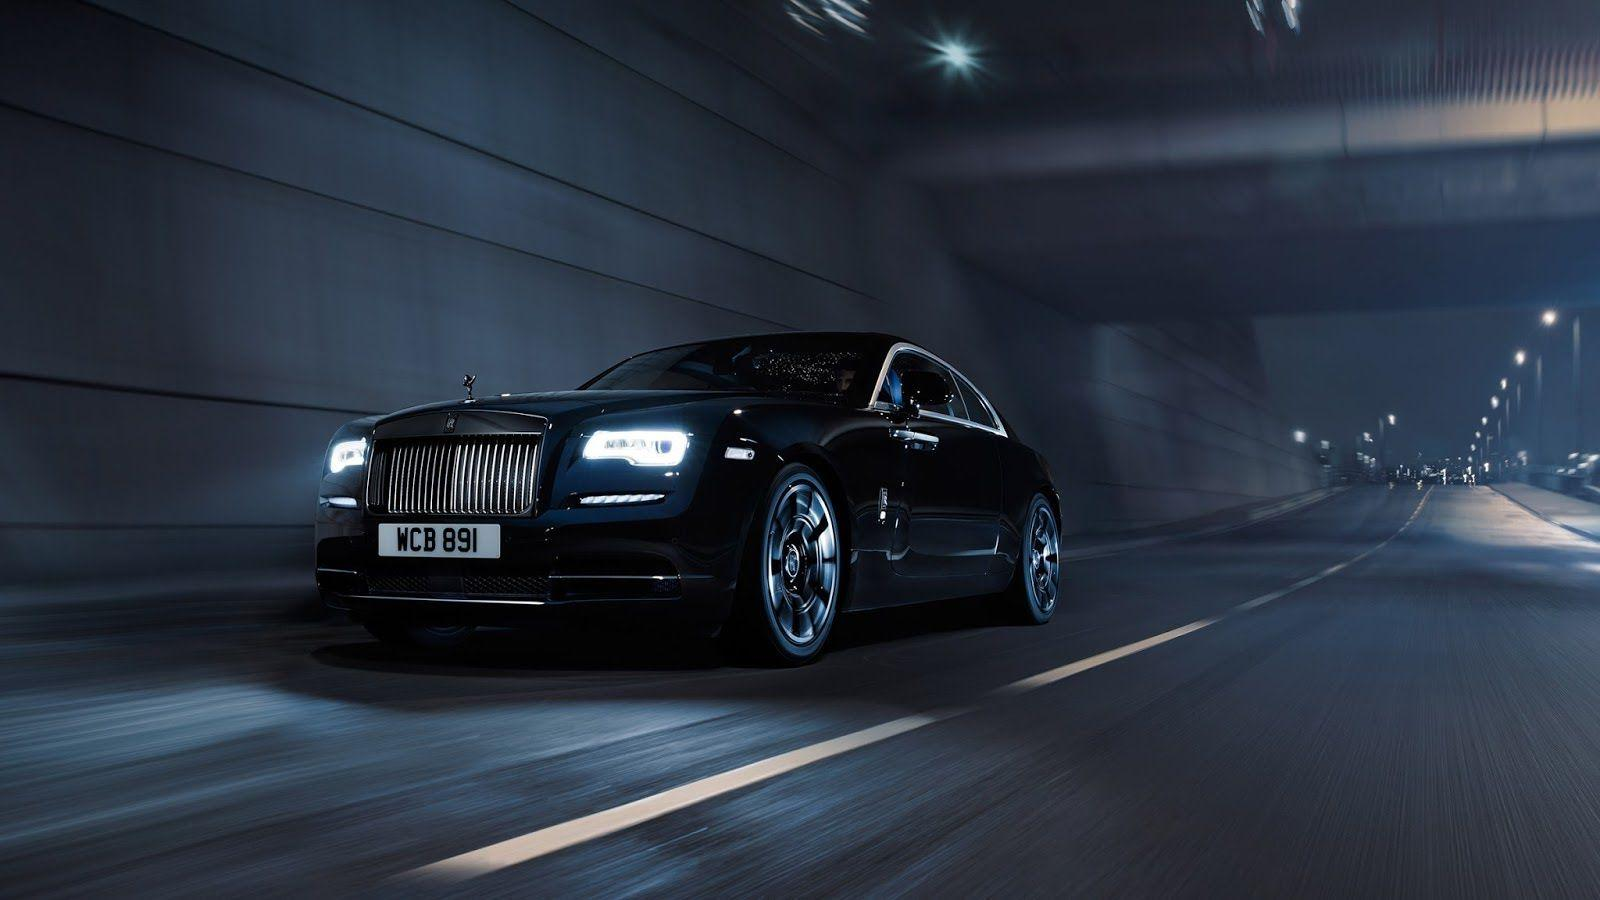 Rolls Royce Black Badge Wallpapers Wallpapers Themes